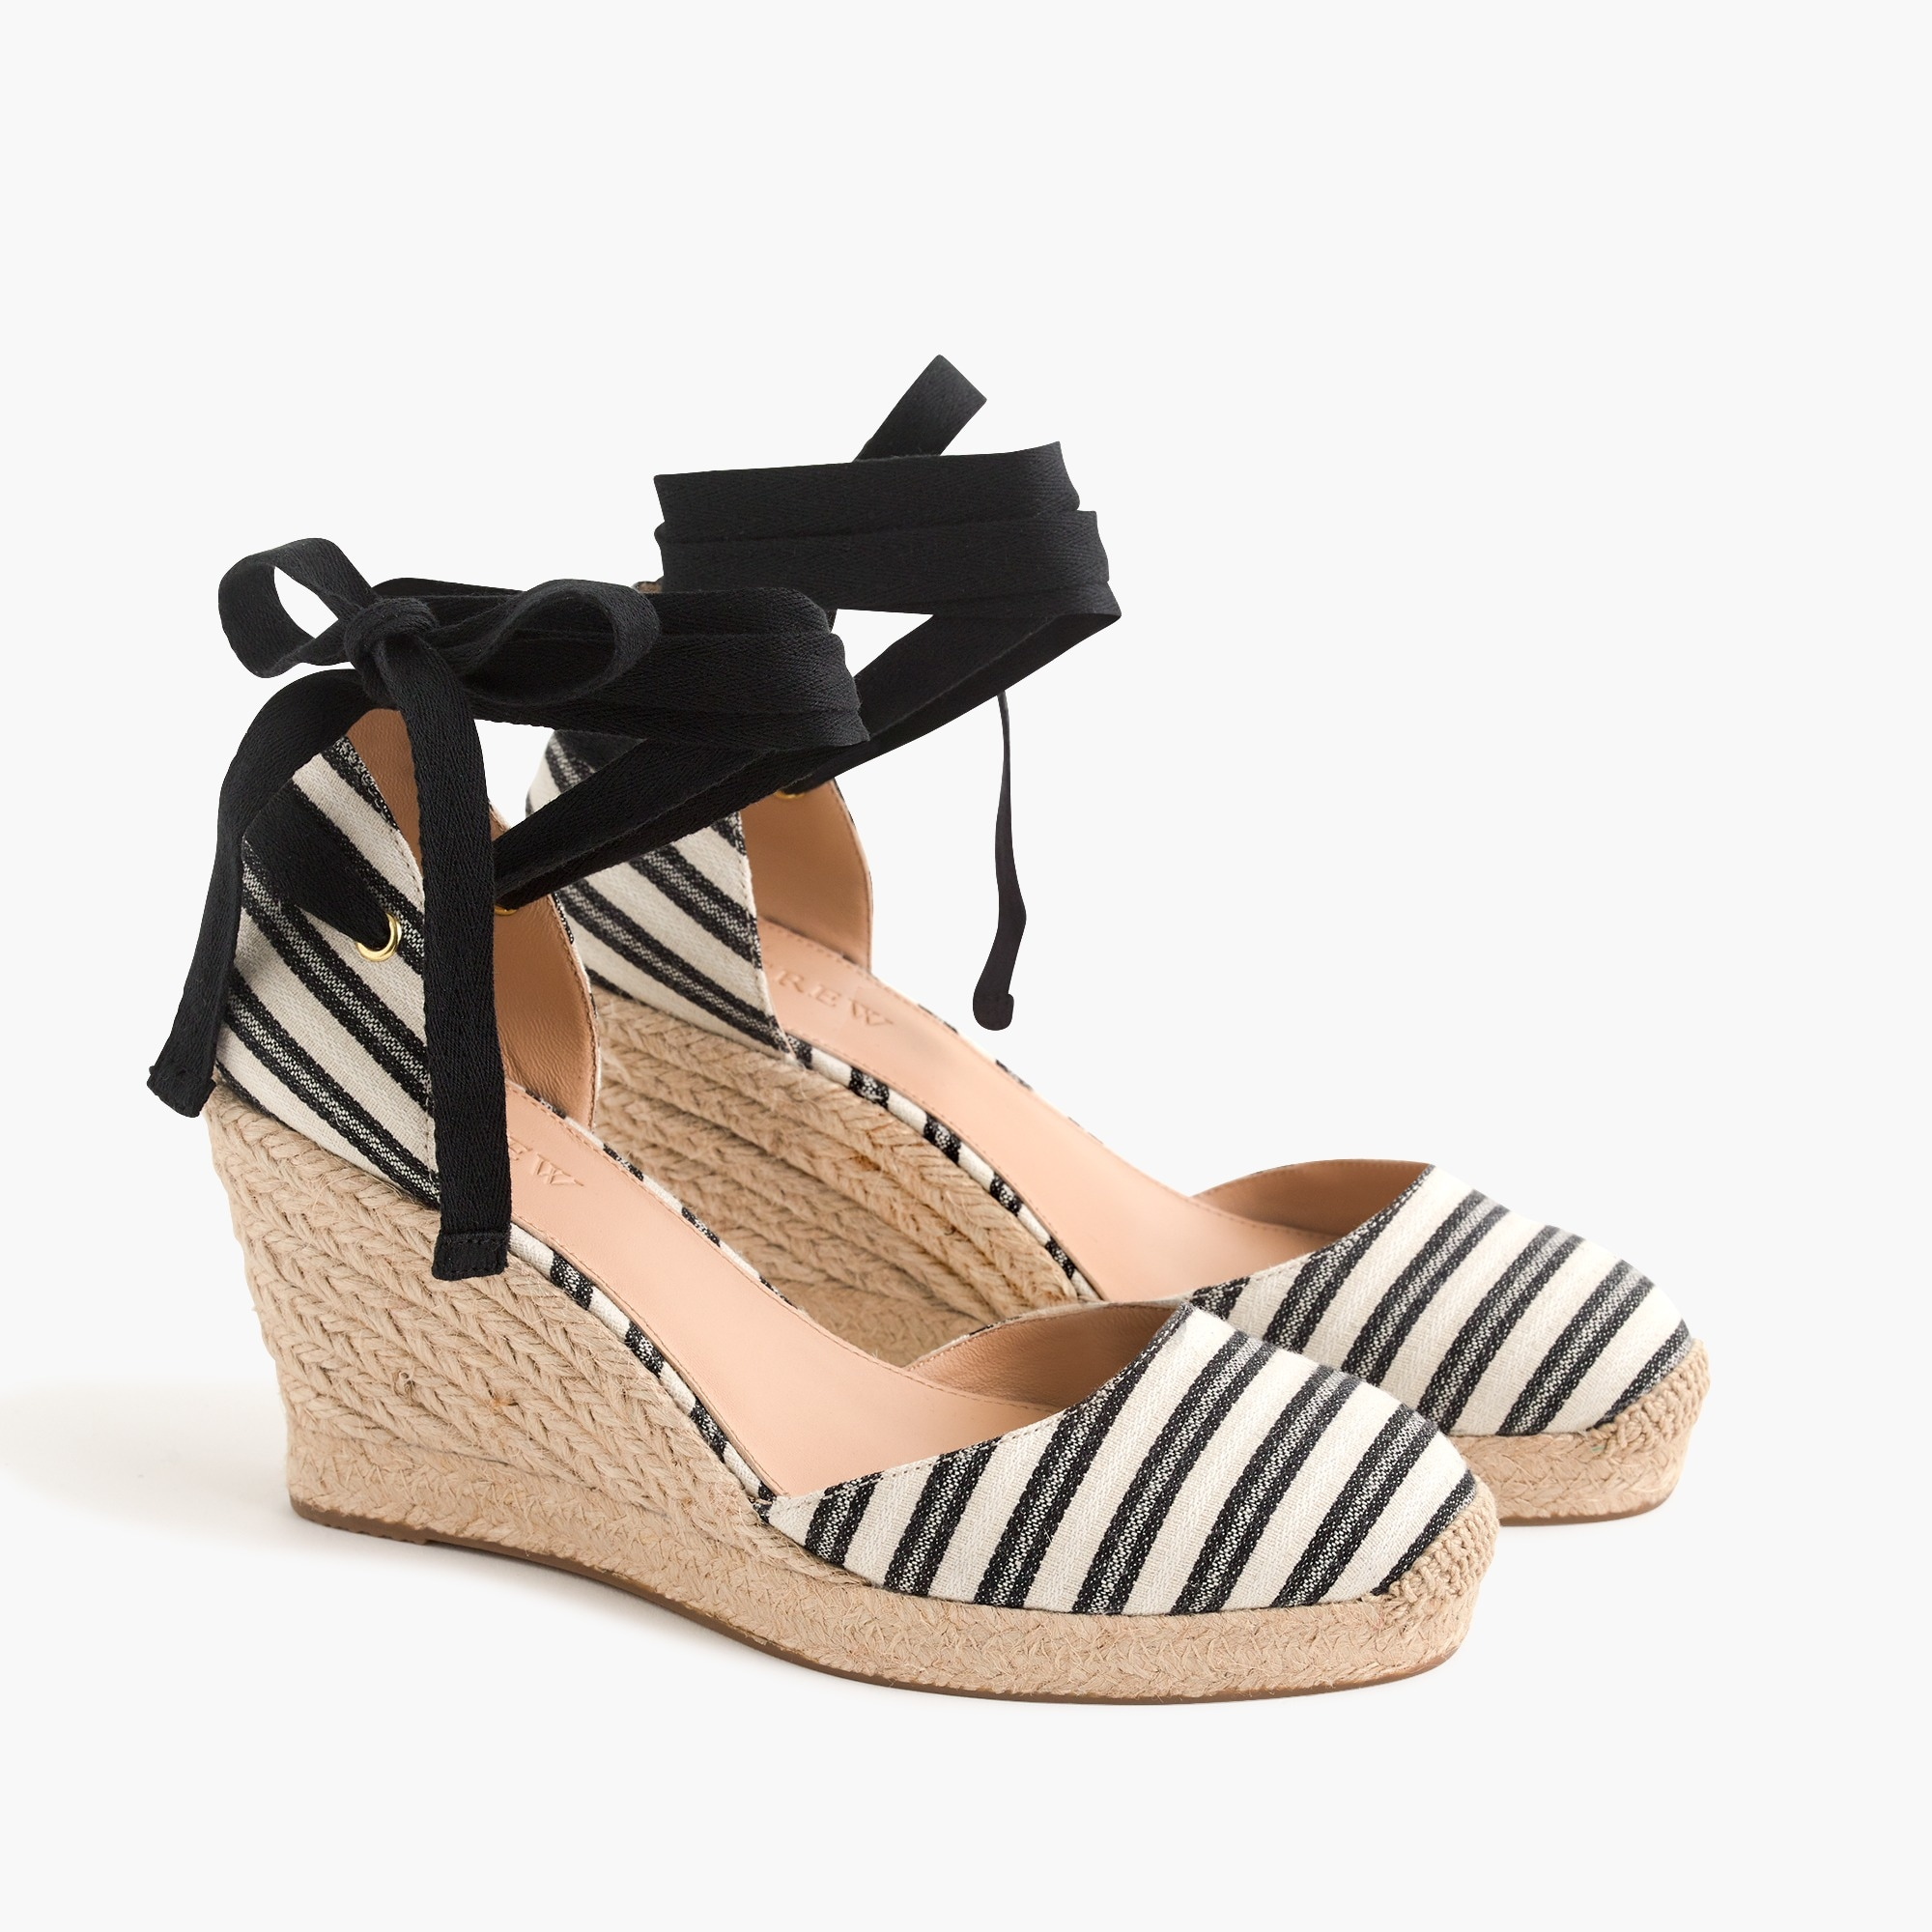 Image 3 for Espadrille wedges (83mm) with ankle wrap in stripe